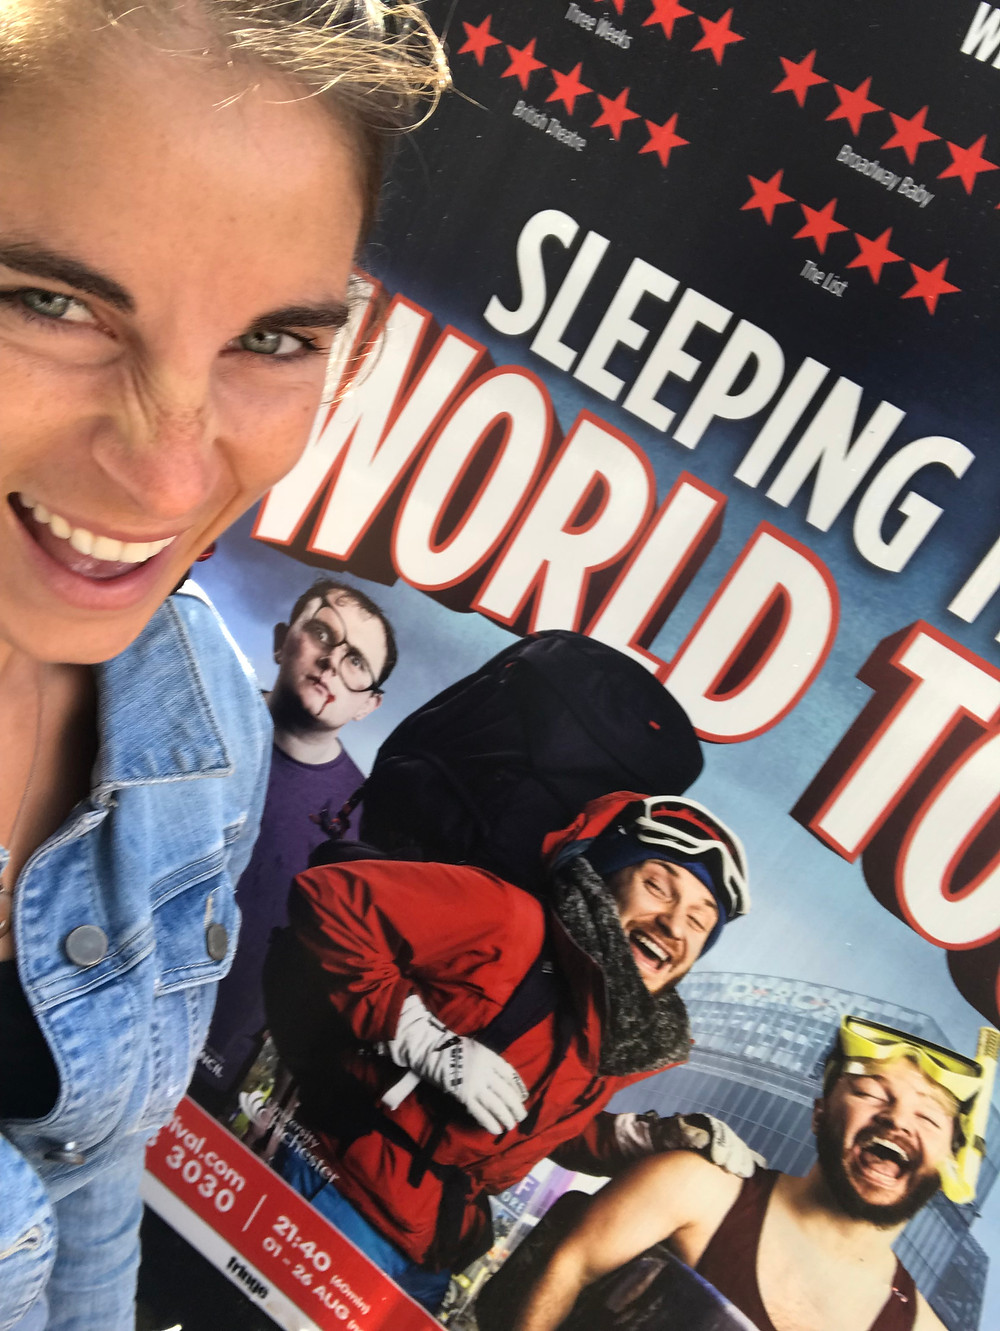 Girl stands in front of sleeping trees world tour poster smiling